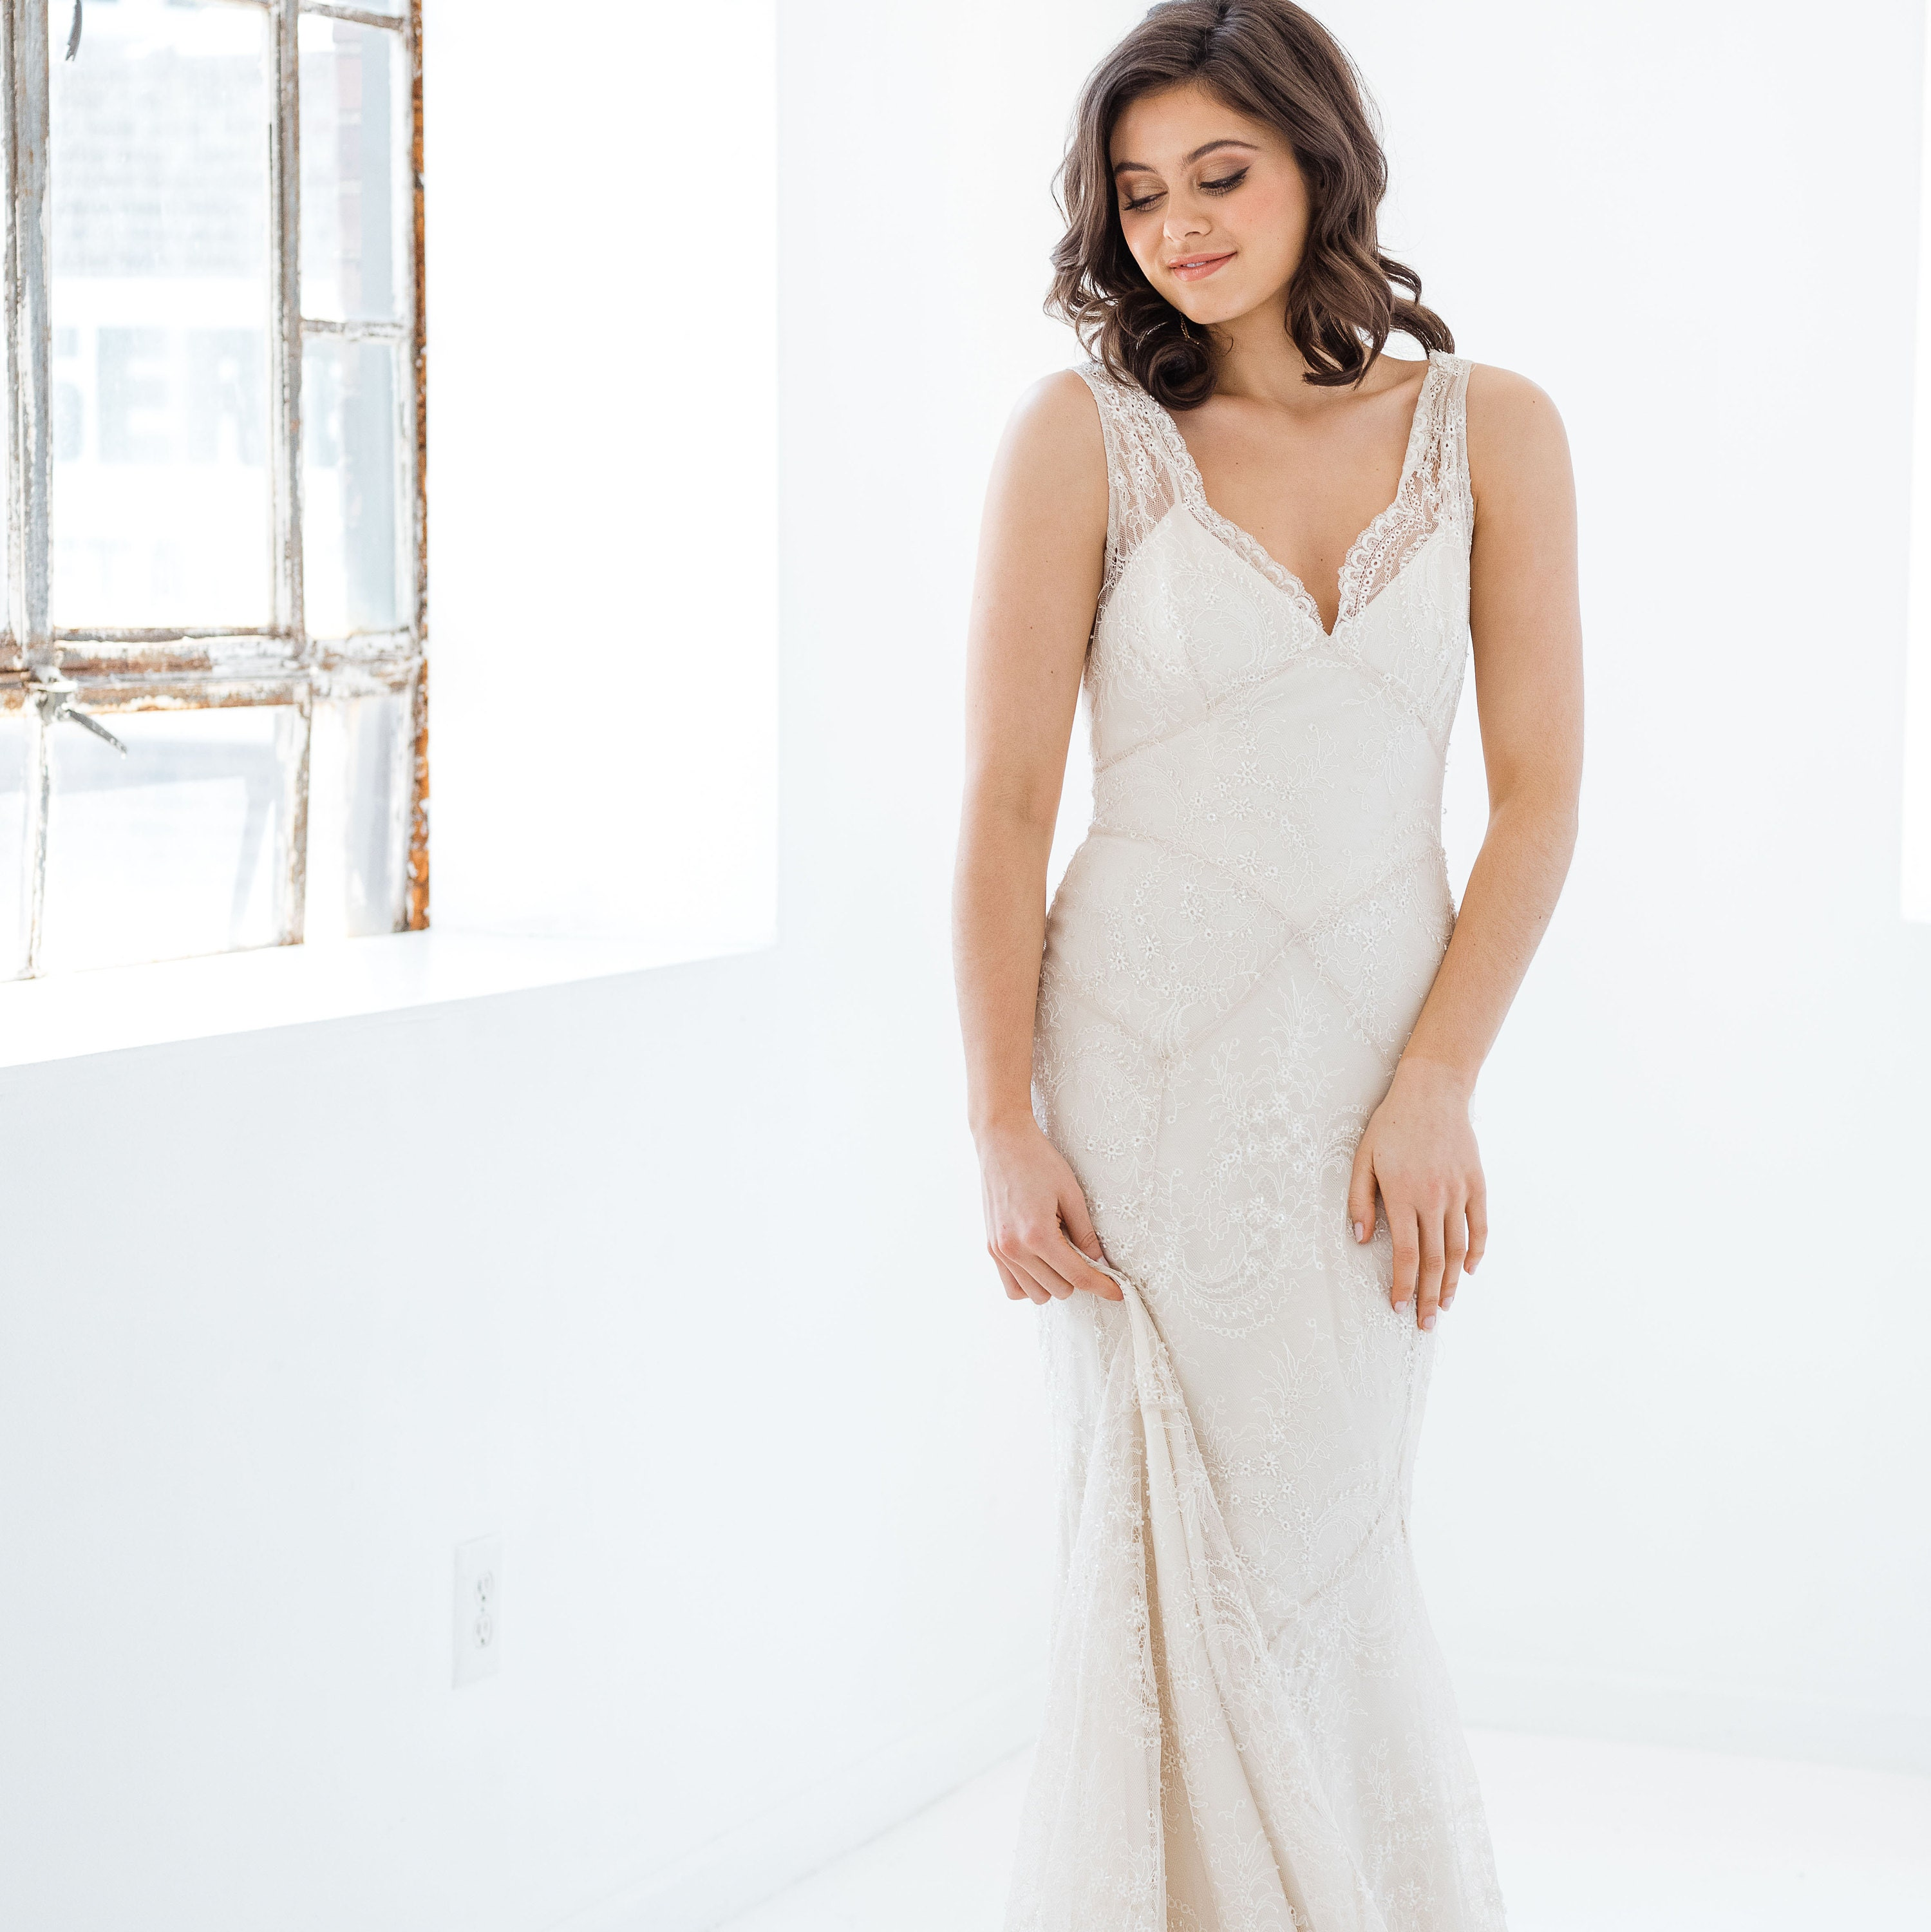 9760a7b7bd5d3 Rebecca Schoneveld Handcrafted Bridal by RebeccaSchoneveld on Etsy